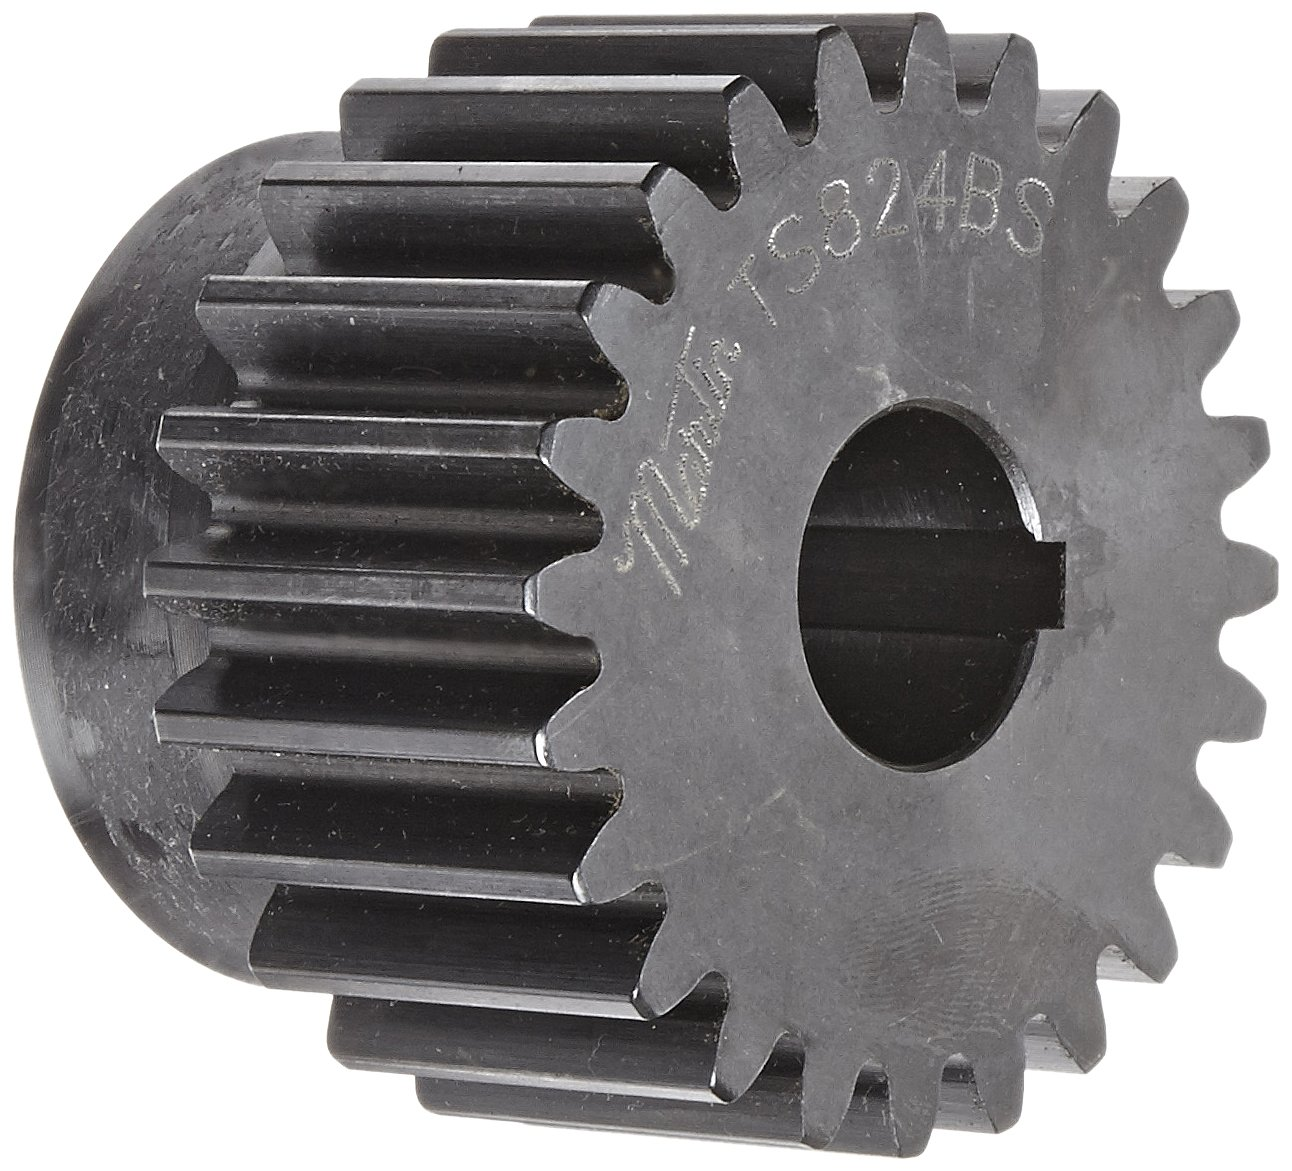 Steel Spur Gear 1.250 Pitch Dia. 16 Pitch In. Number of Teeth: 20